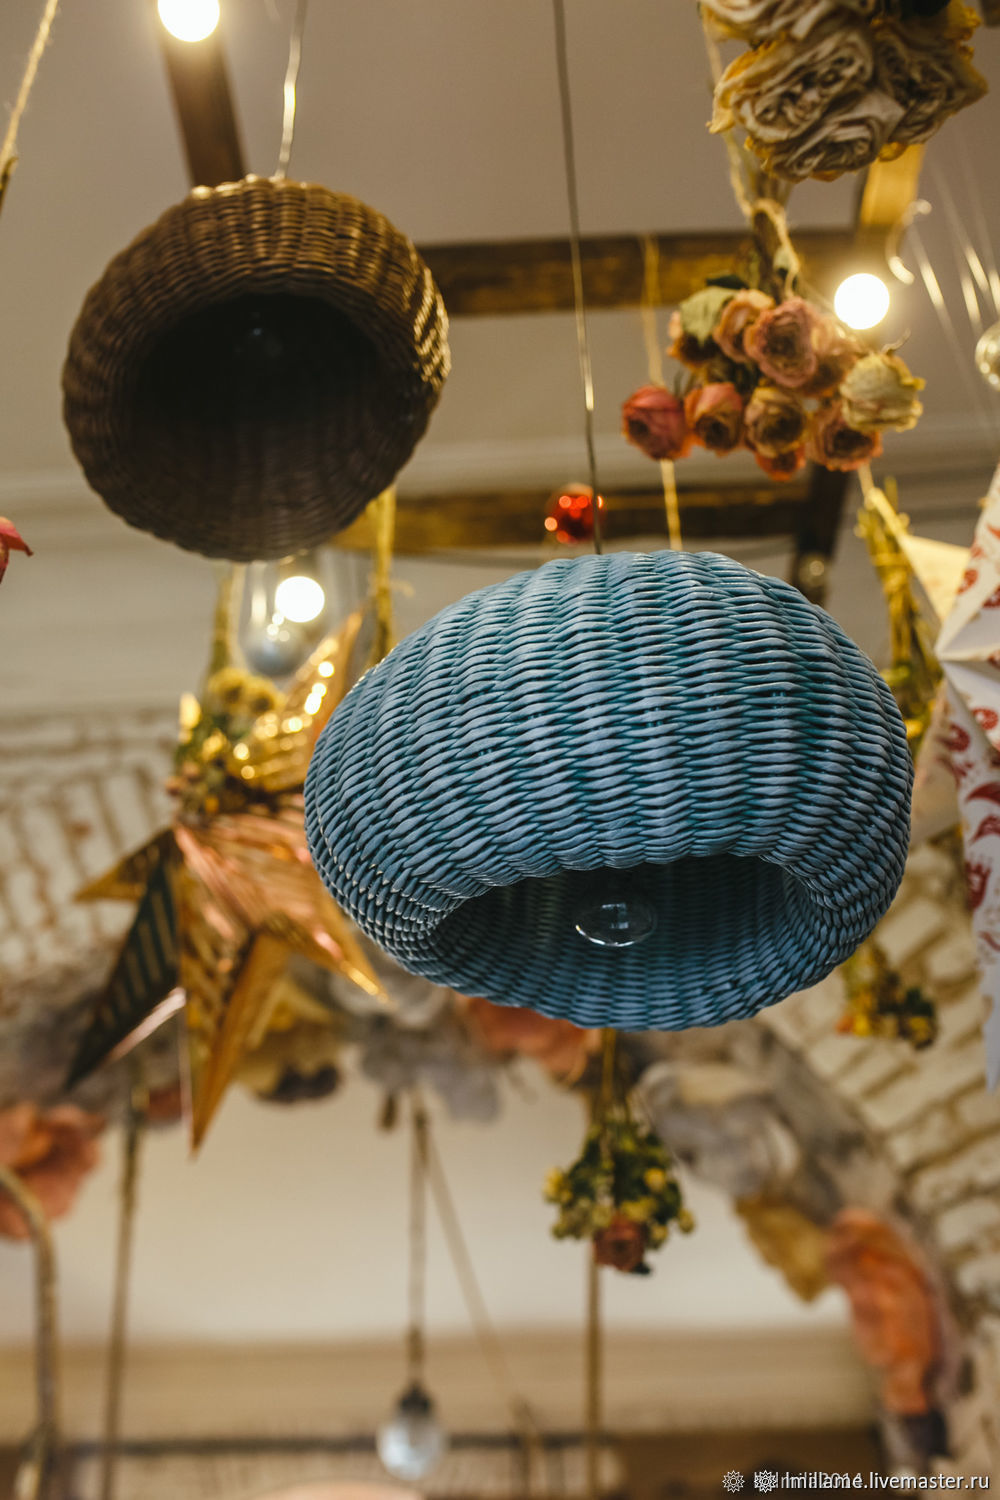 Wicker ceiling lampshade turquoise brown, Lampshades, Astrakhan,  Фото №1